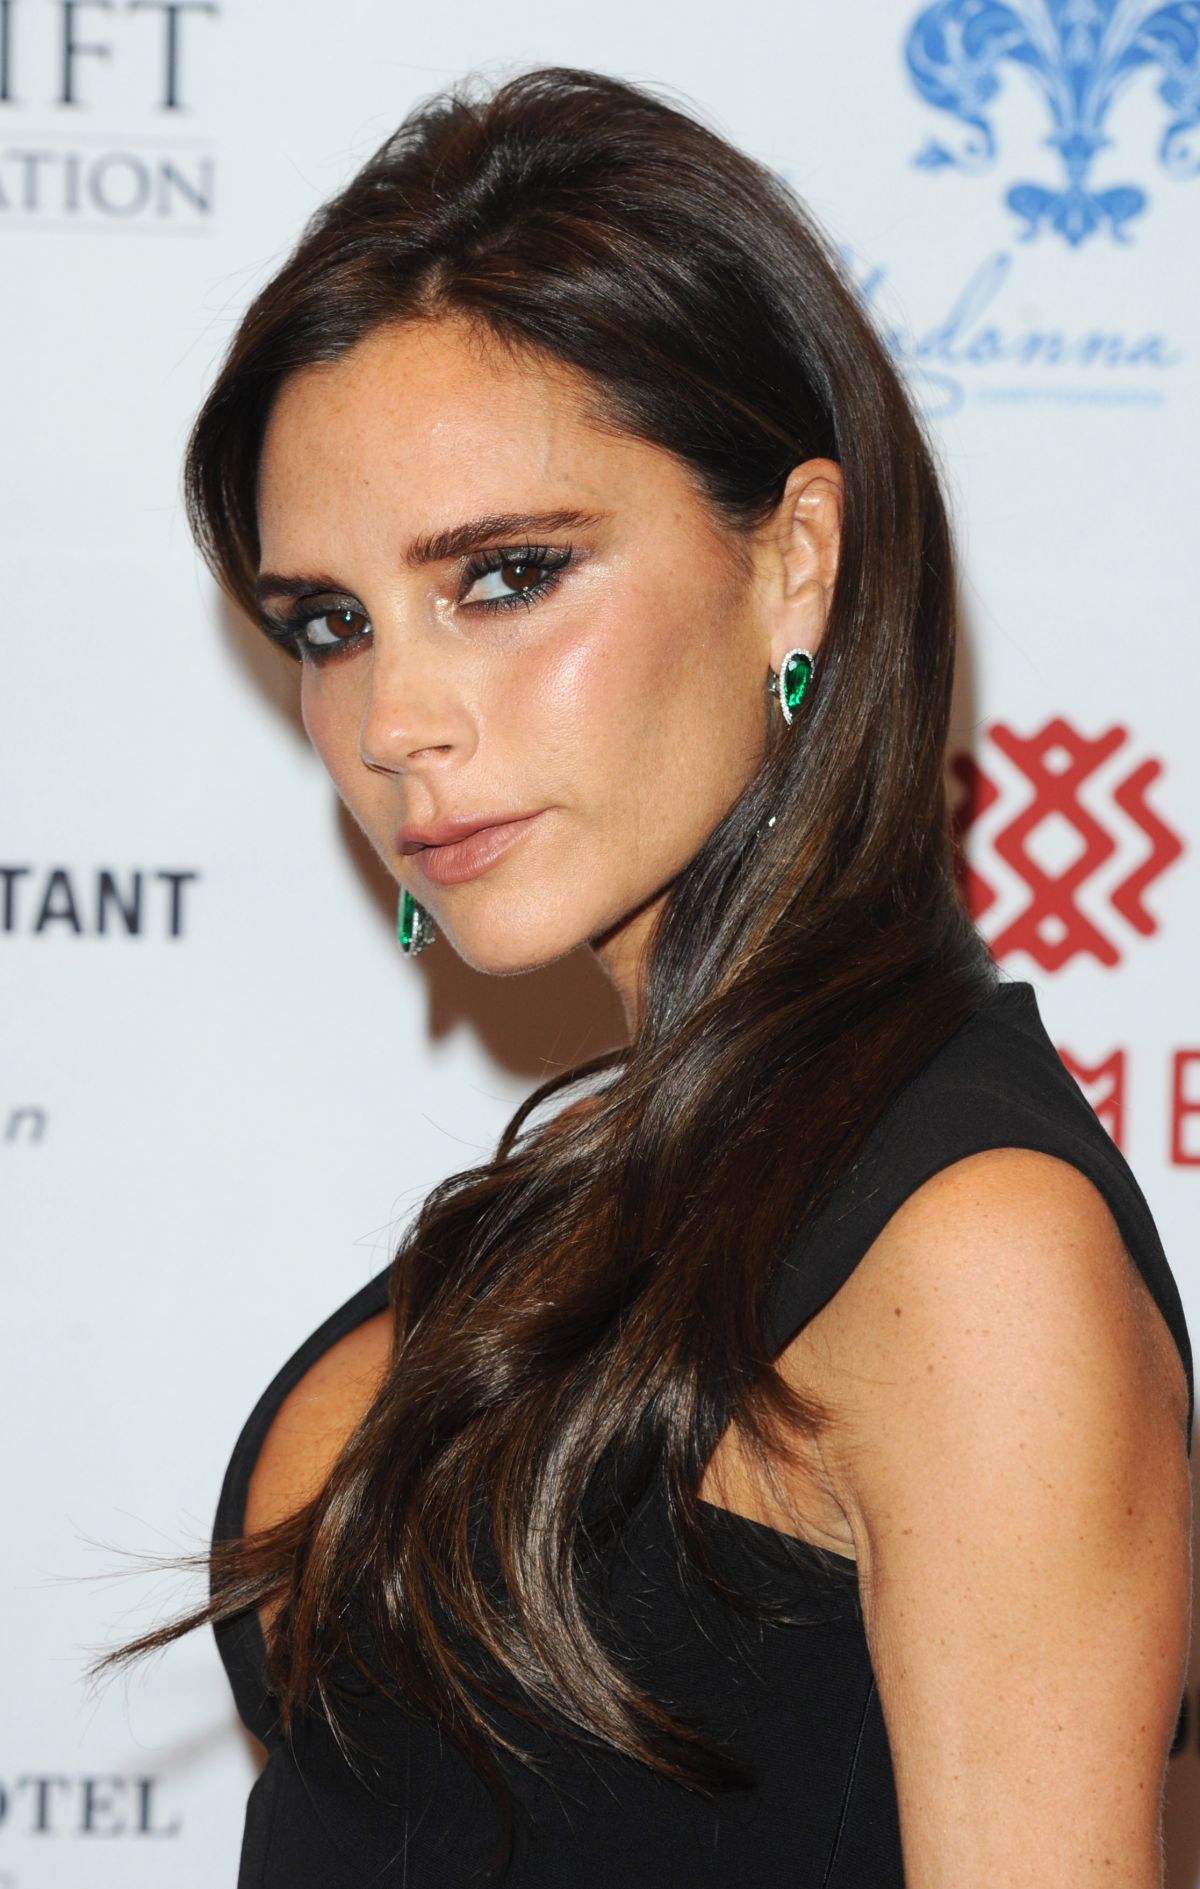 VICTORIA BECKHAM at Global Gift Gala in London – HawtCelebs